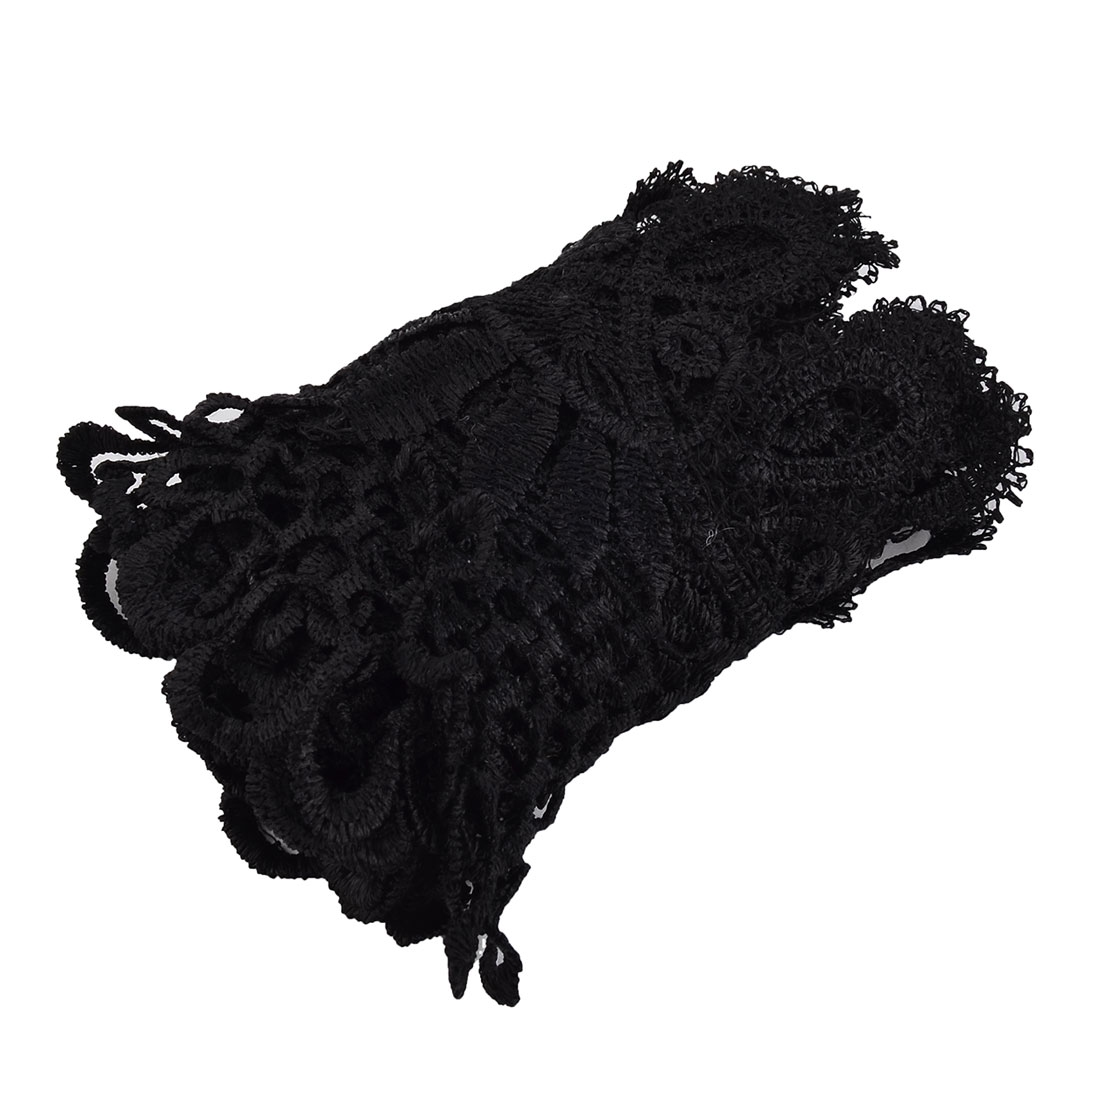 Wedding Polyester Hollowed Out Design DIY Lace Trim Applique Black 4.3 Inch Width